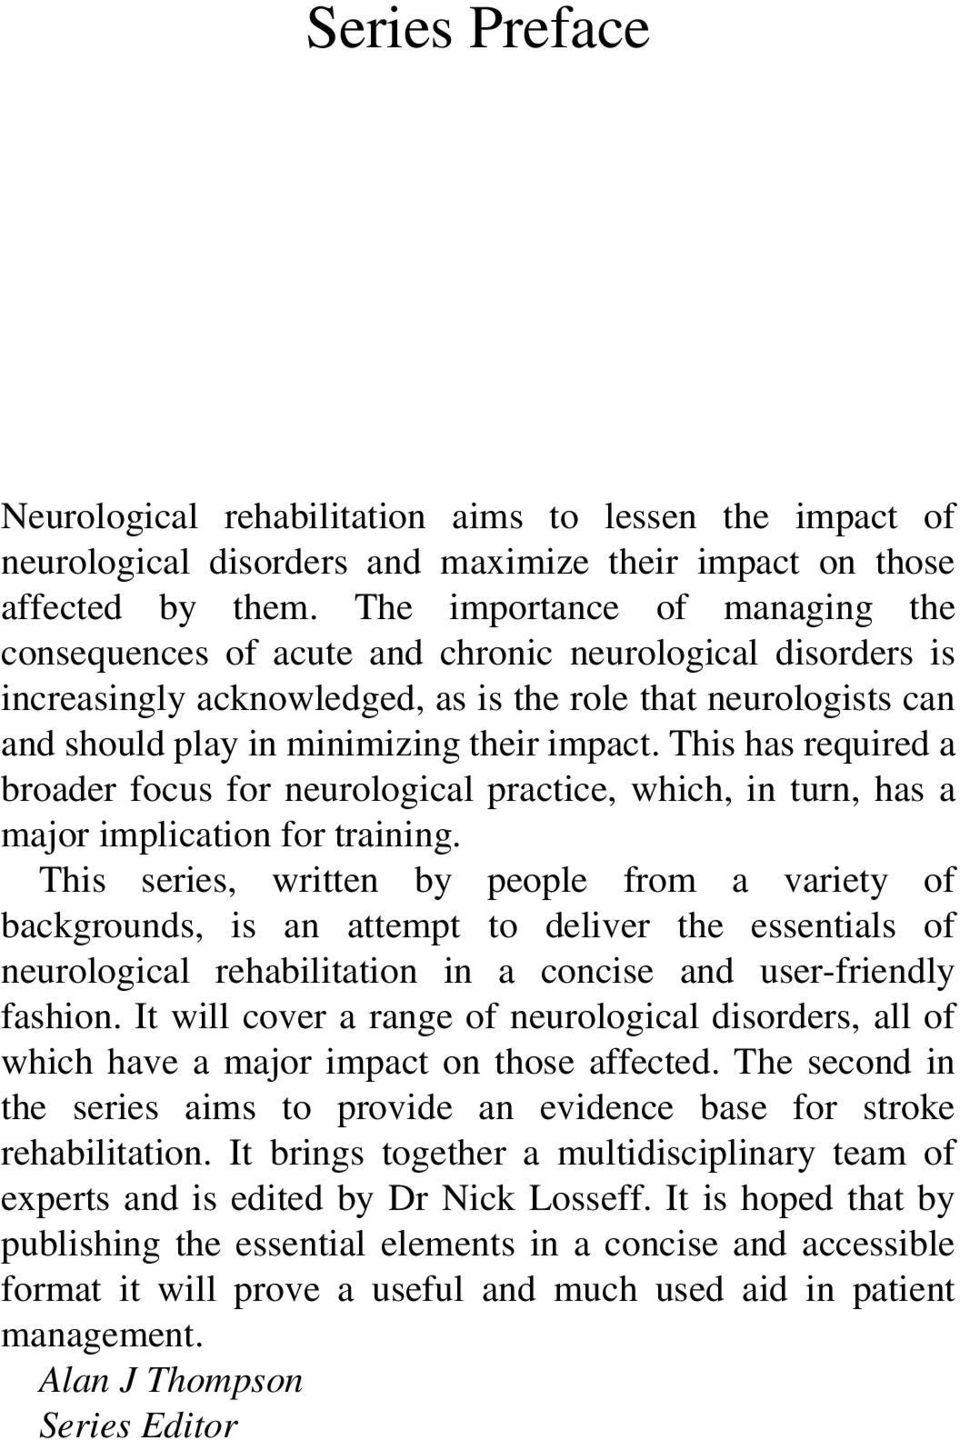 This has required a broader focus for neurological practice, which, in turn, has a major implication for training.